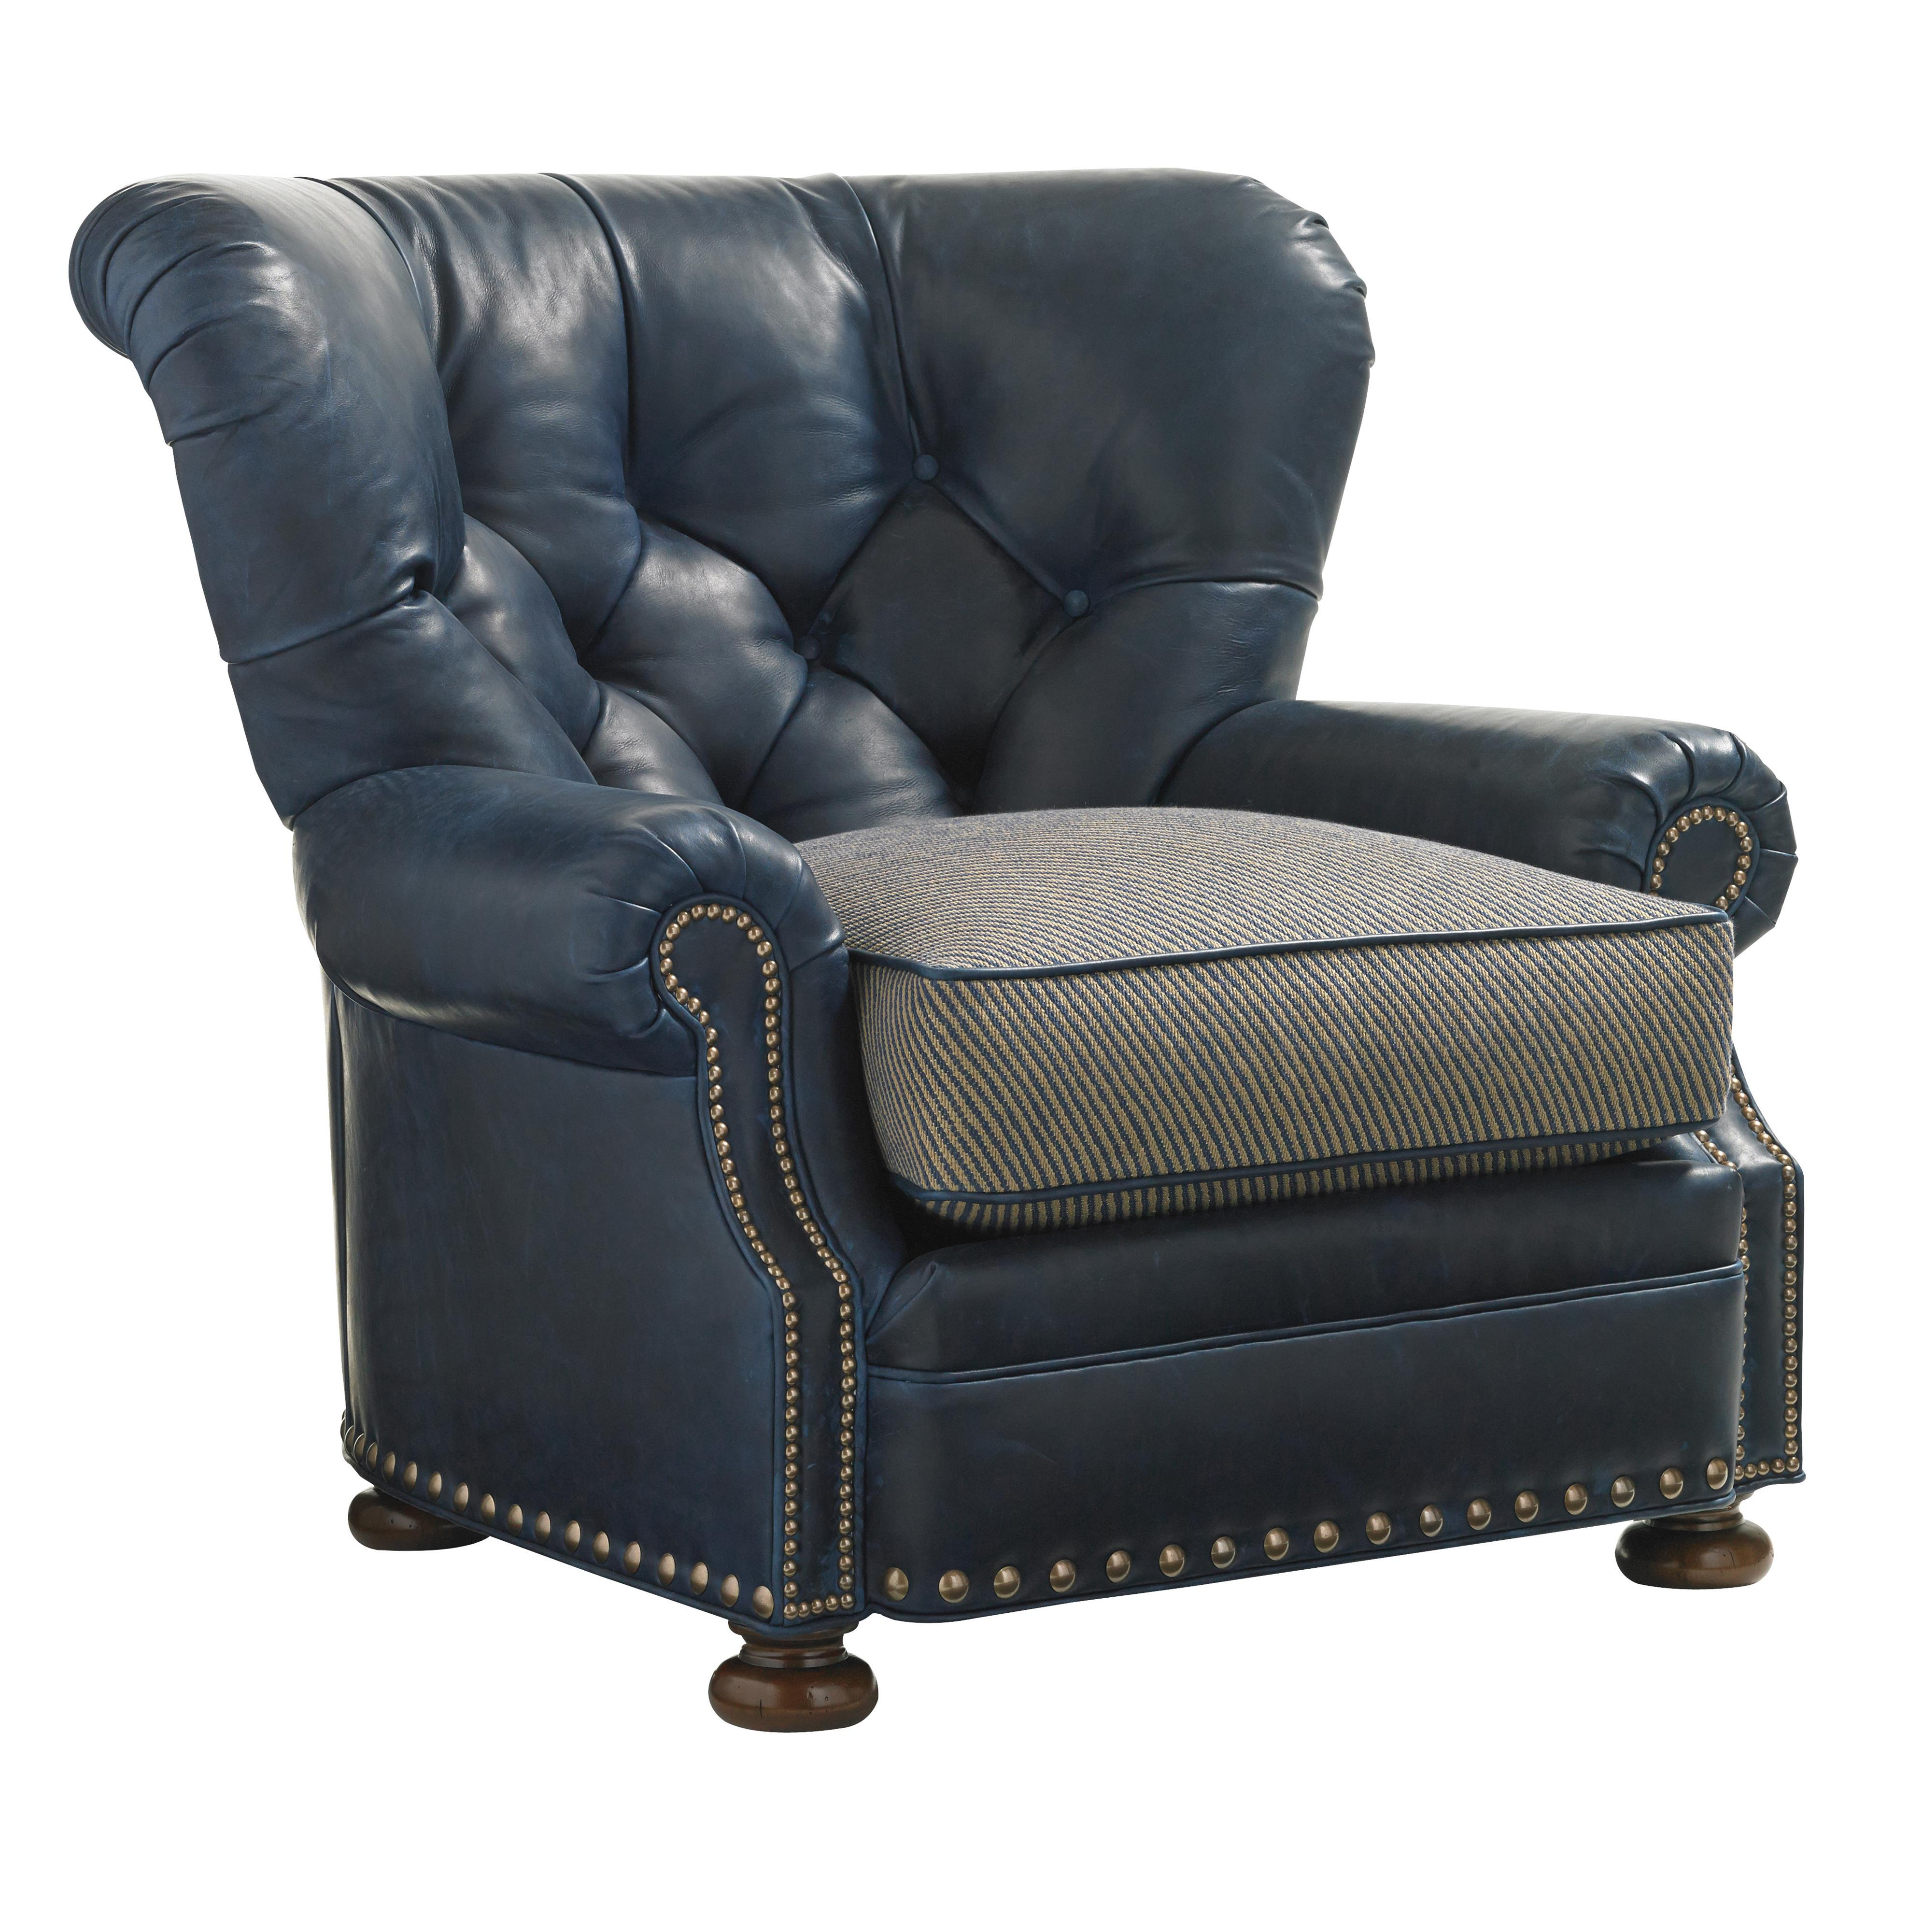 Leather Elle Chair by Lexington at Baer's Furniture